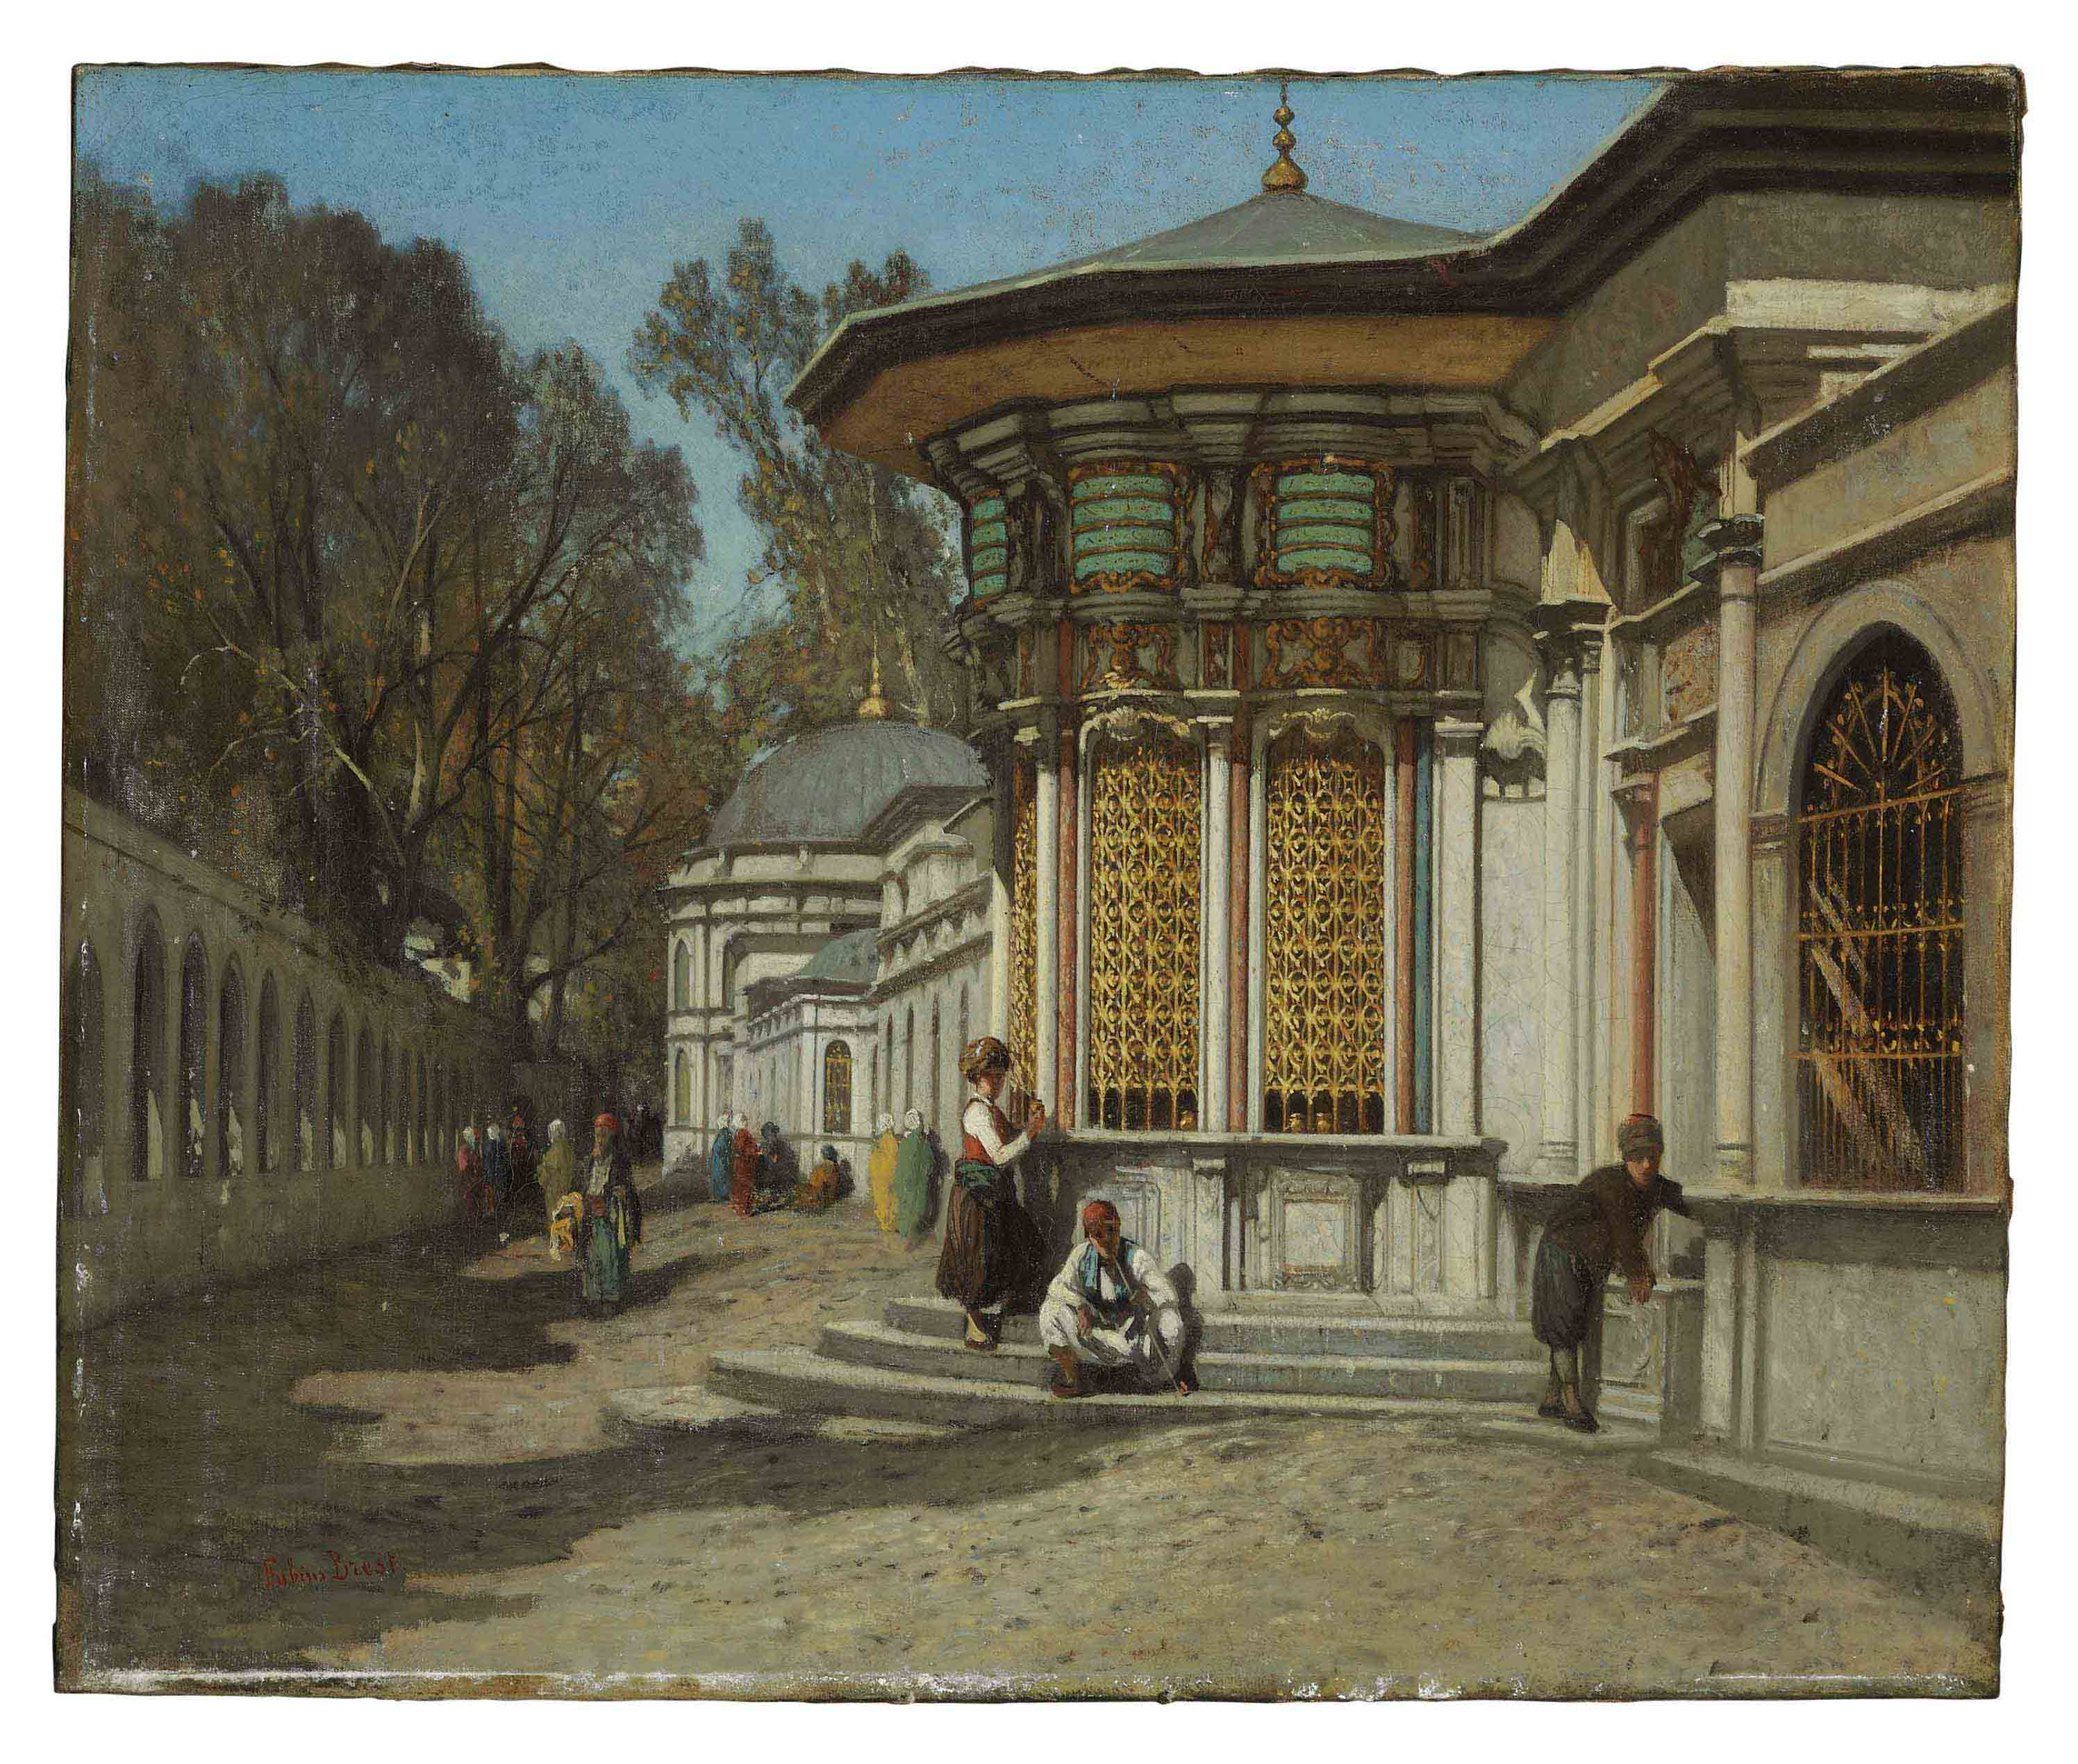 The Mausoleums near the Sehzadebasi Mosque, Istanbul